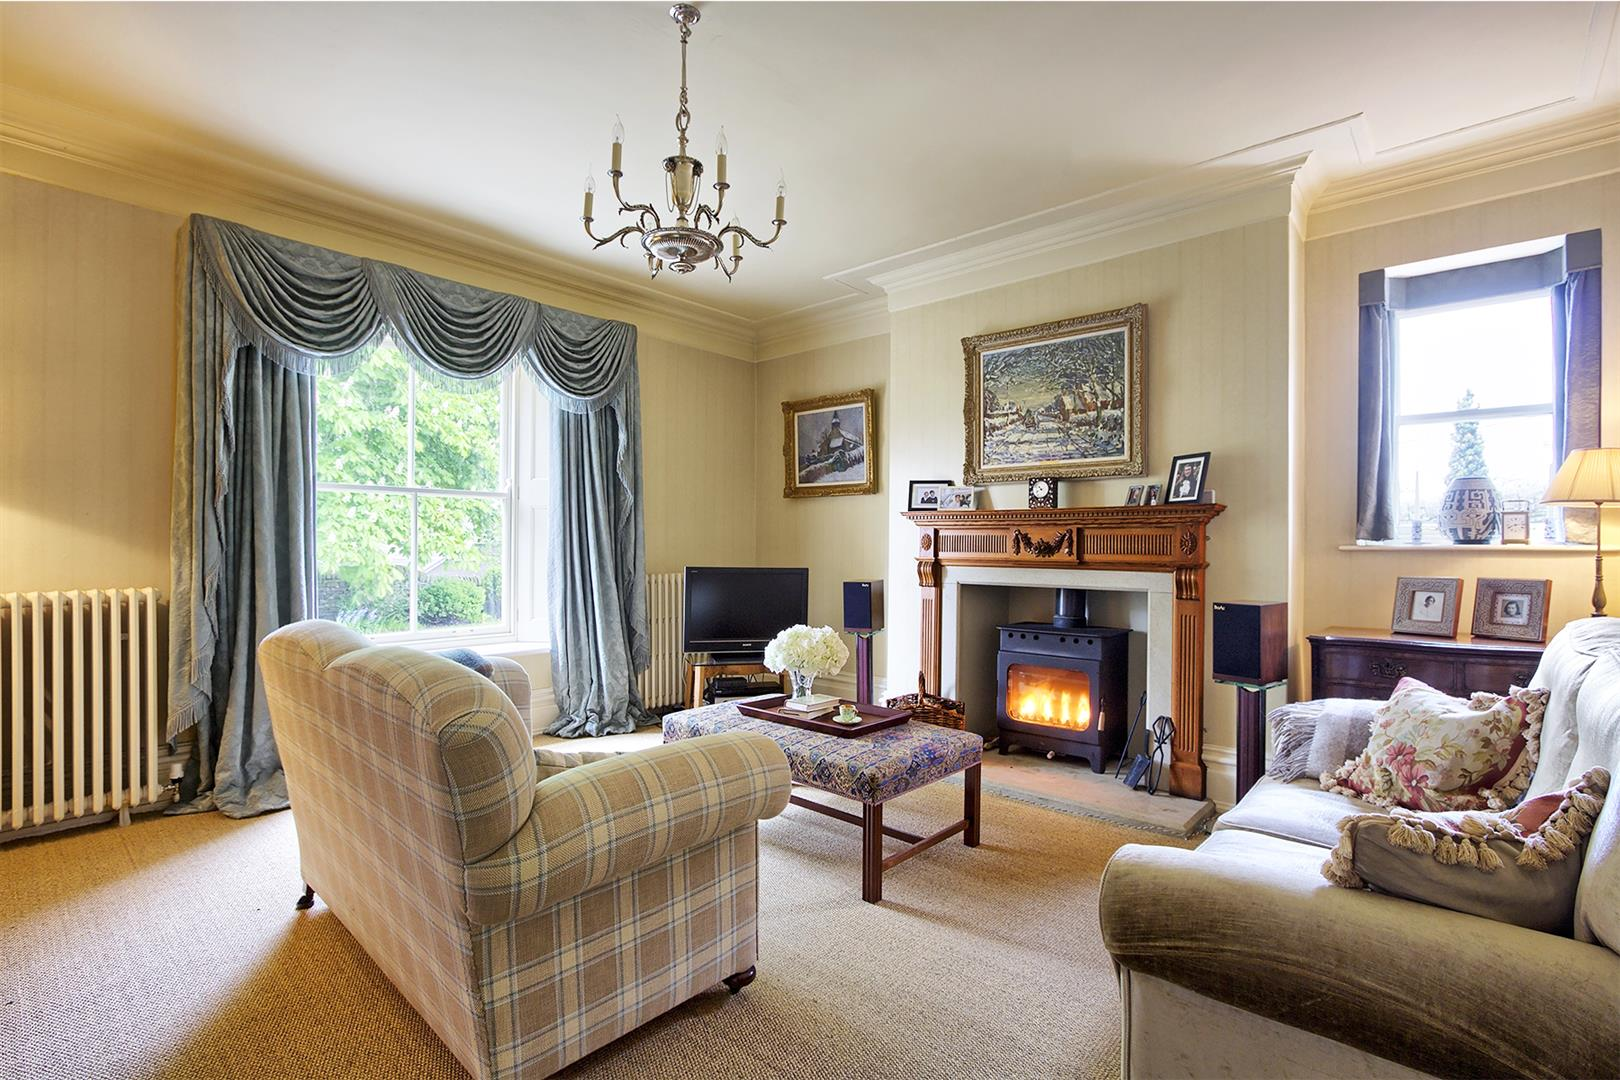 5 bedroom detached house For Sale in Bolton - lounge.png.